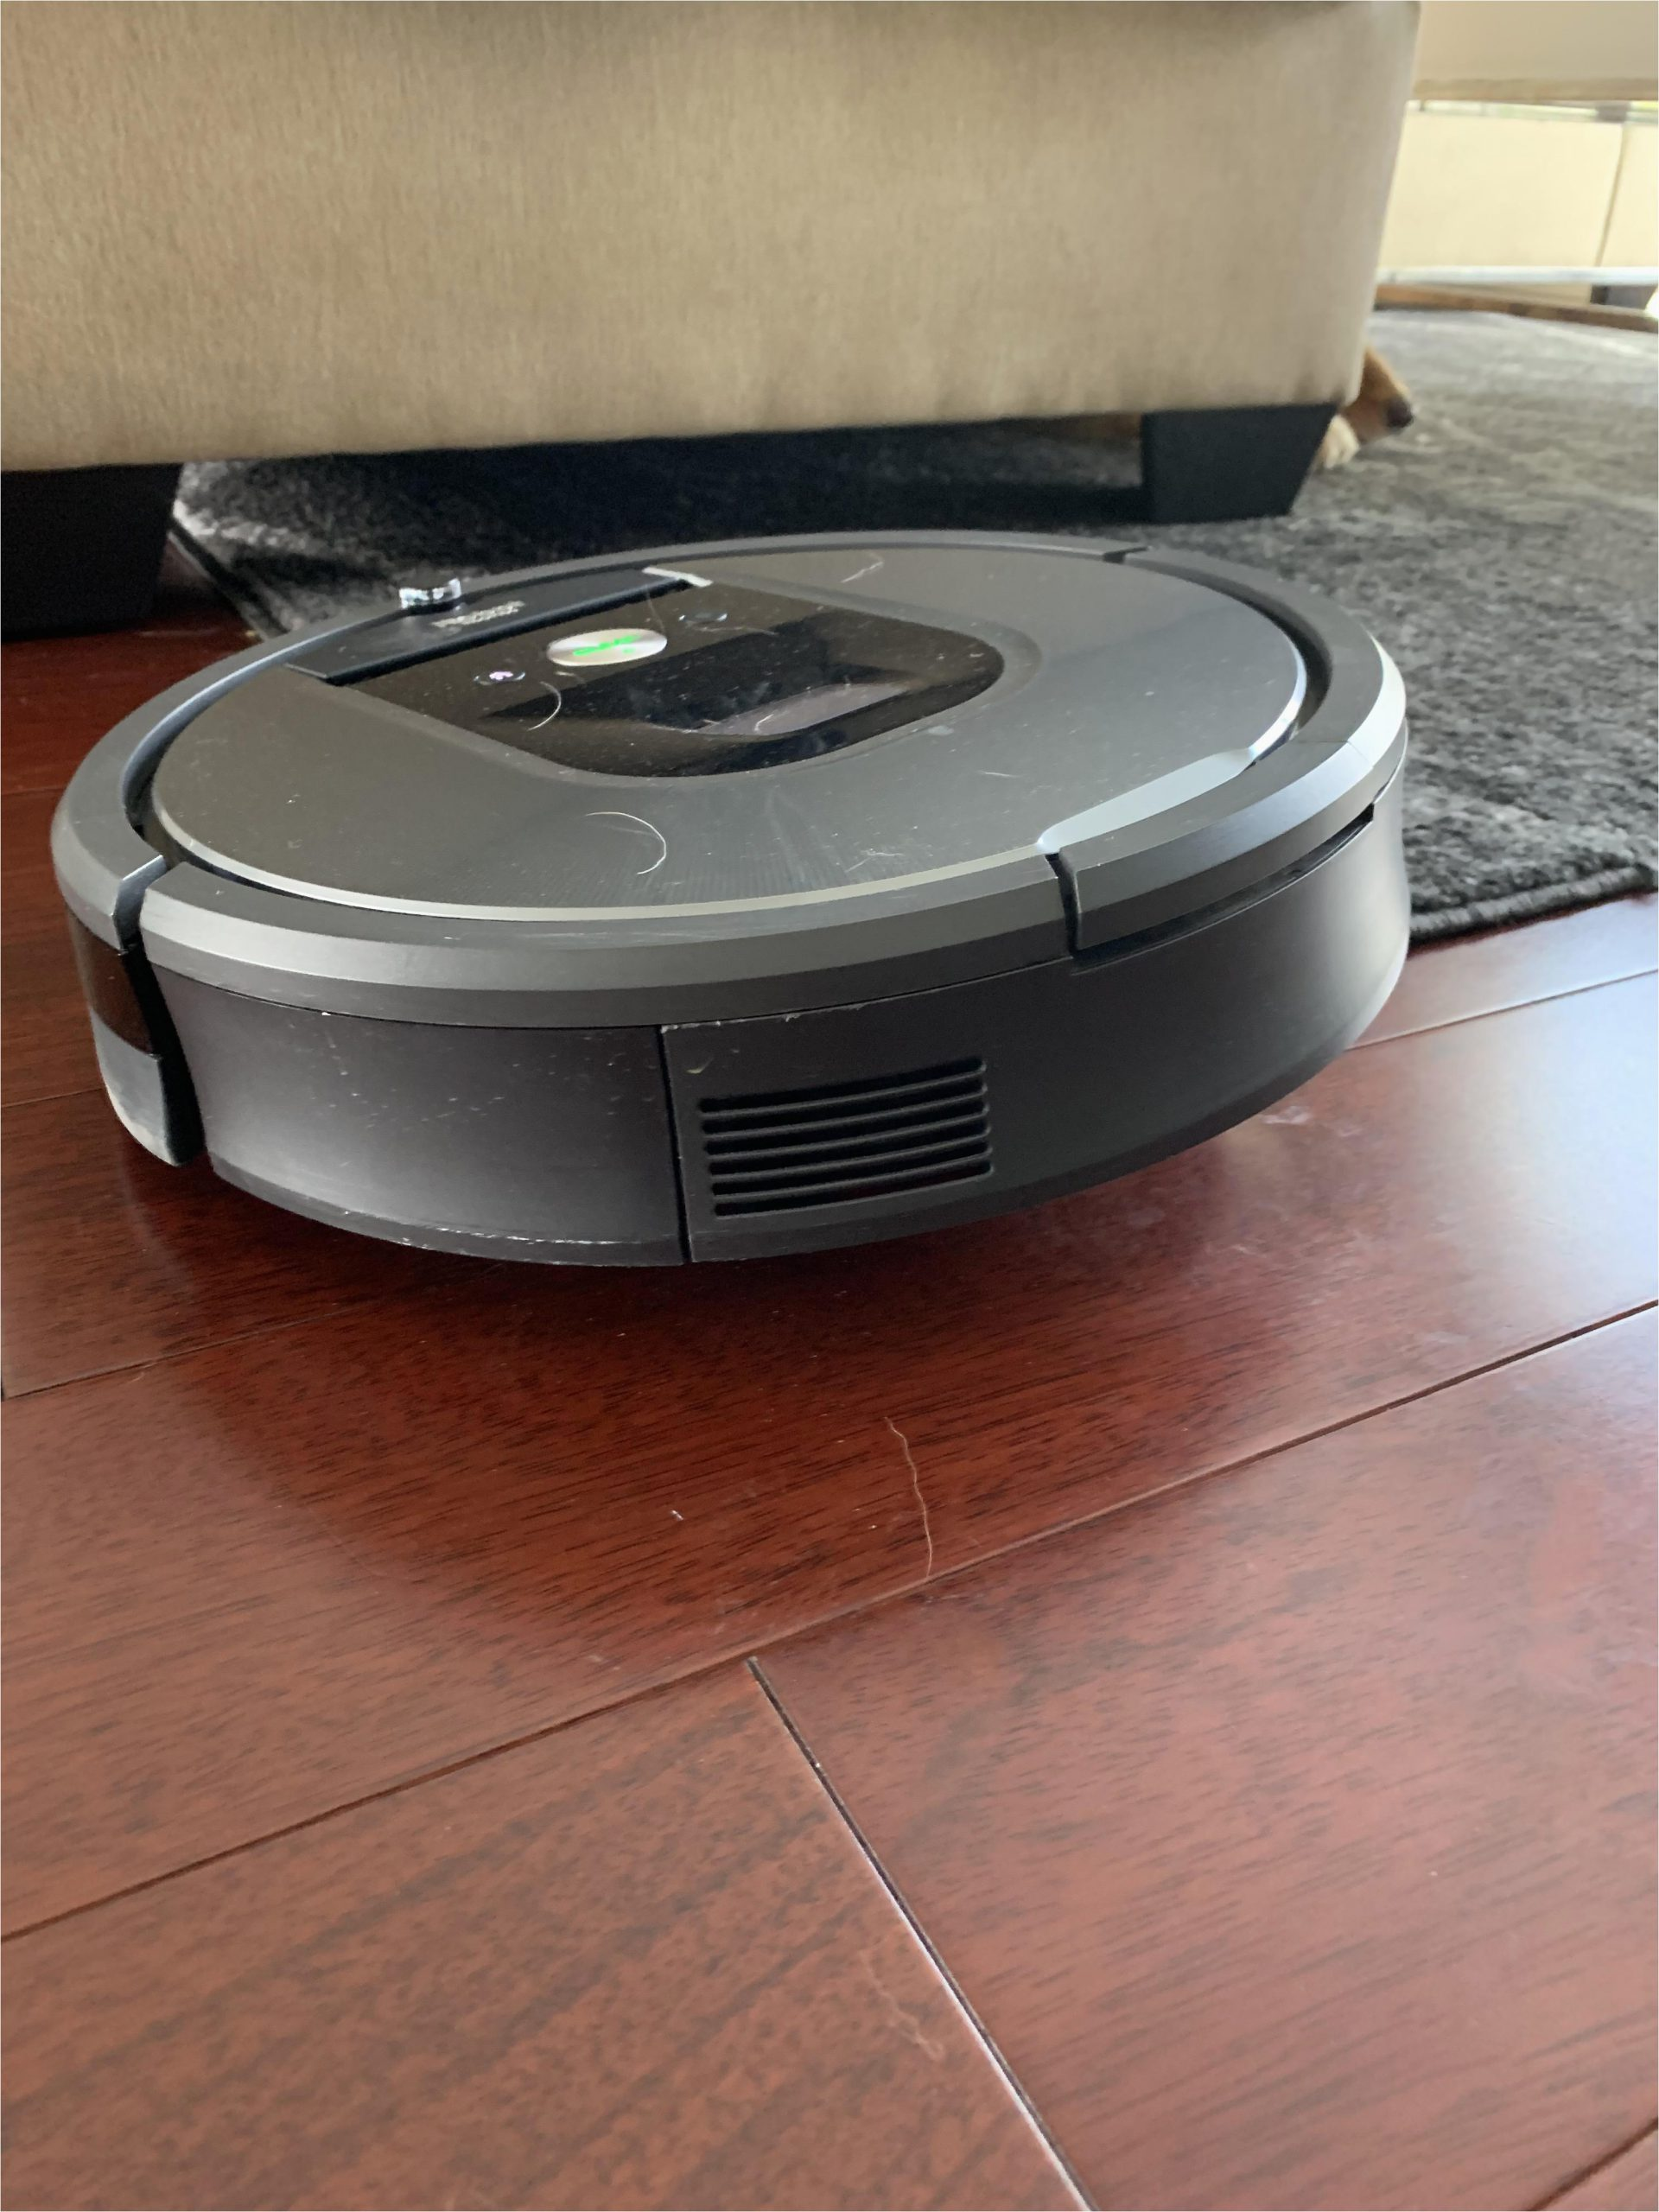 Does Roomba Go Over area Rugs Roomba Ting Stuck On Rug Corners Any Tips Roomba